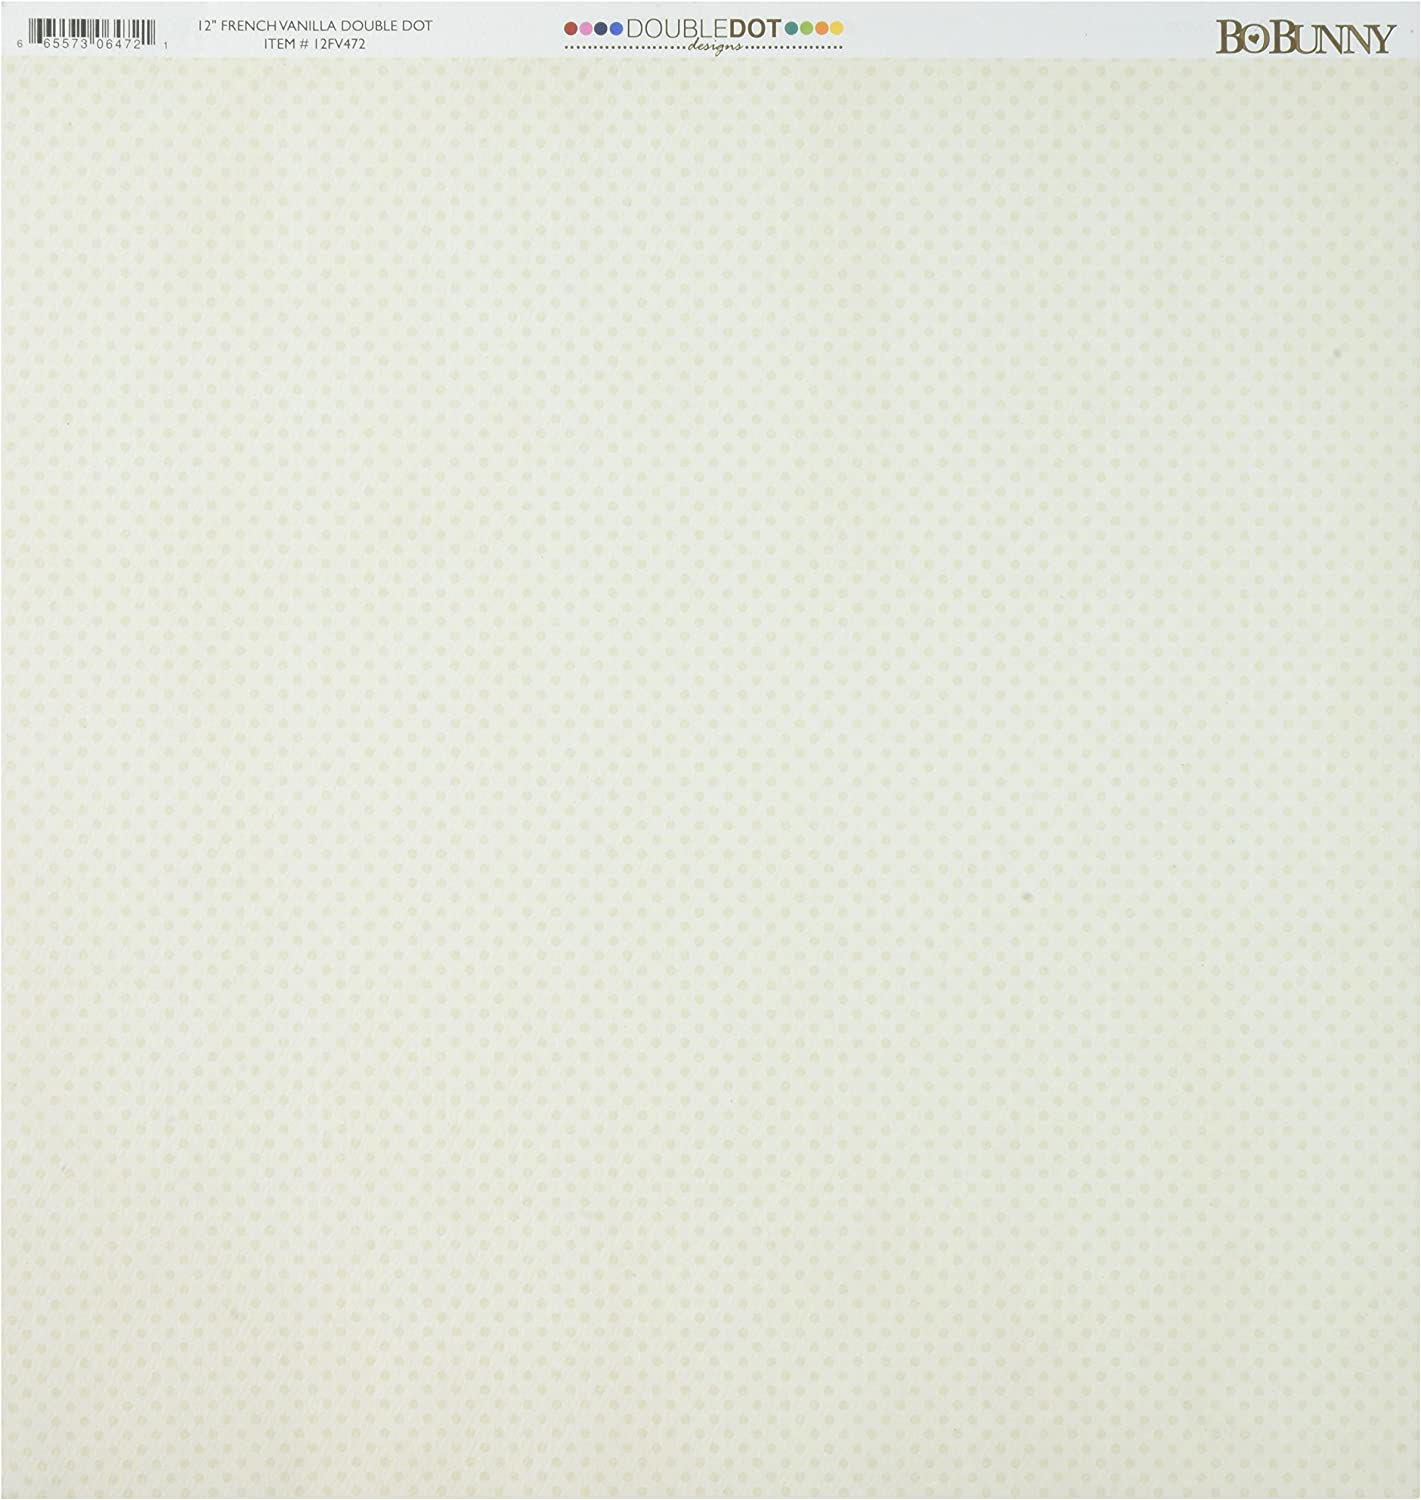 12 x 12 French Vanilla 25 Sheets Per Pack Bo Bunny 12FV472 Double Dot Double-Sided Textured Cardstock Assorted